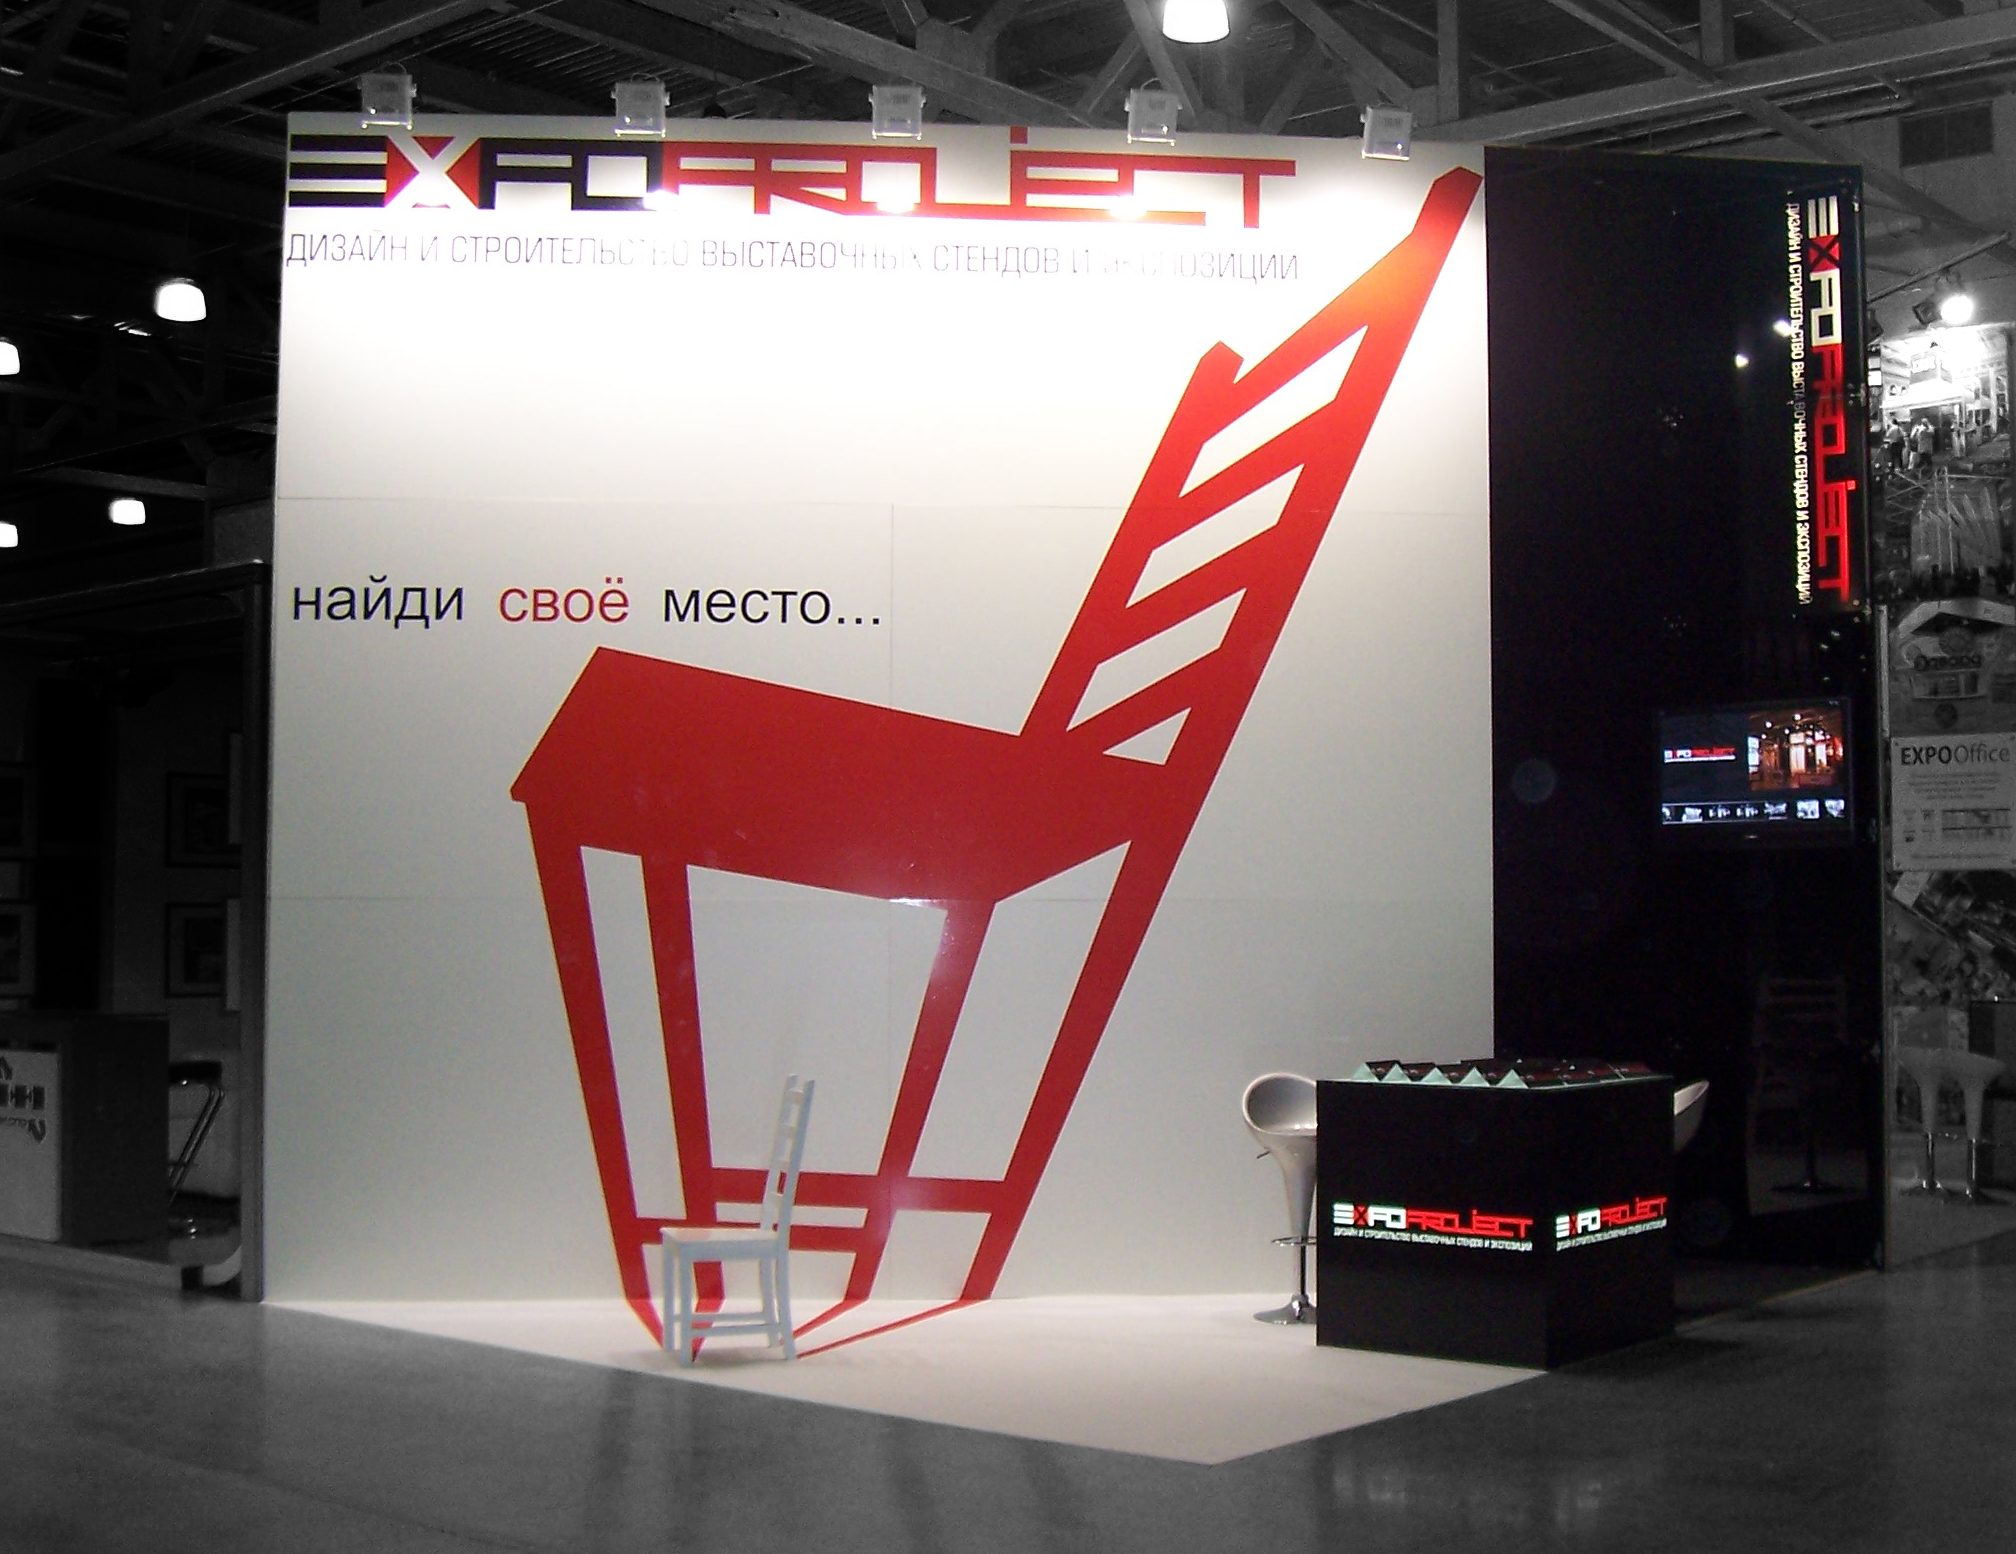 Exhibition Stand Graphics : Exhibition stand expoproject by nick sochilin at coroflot